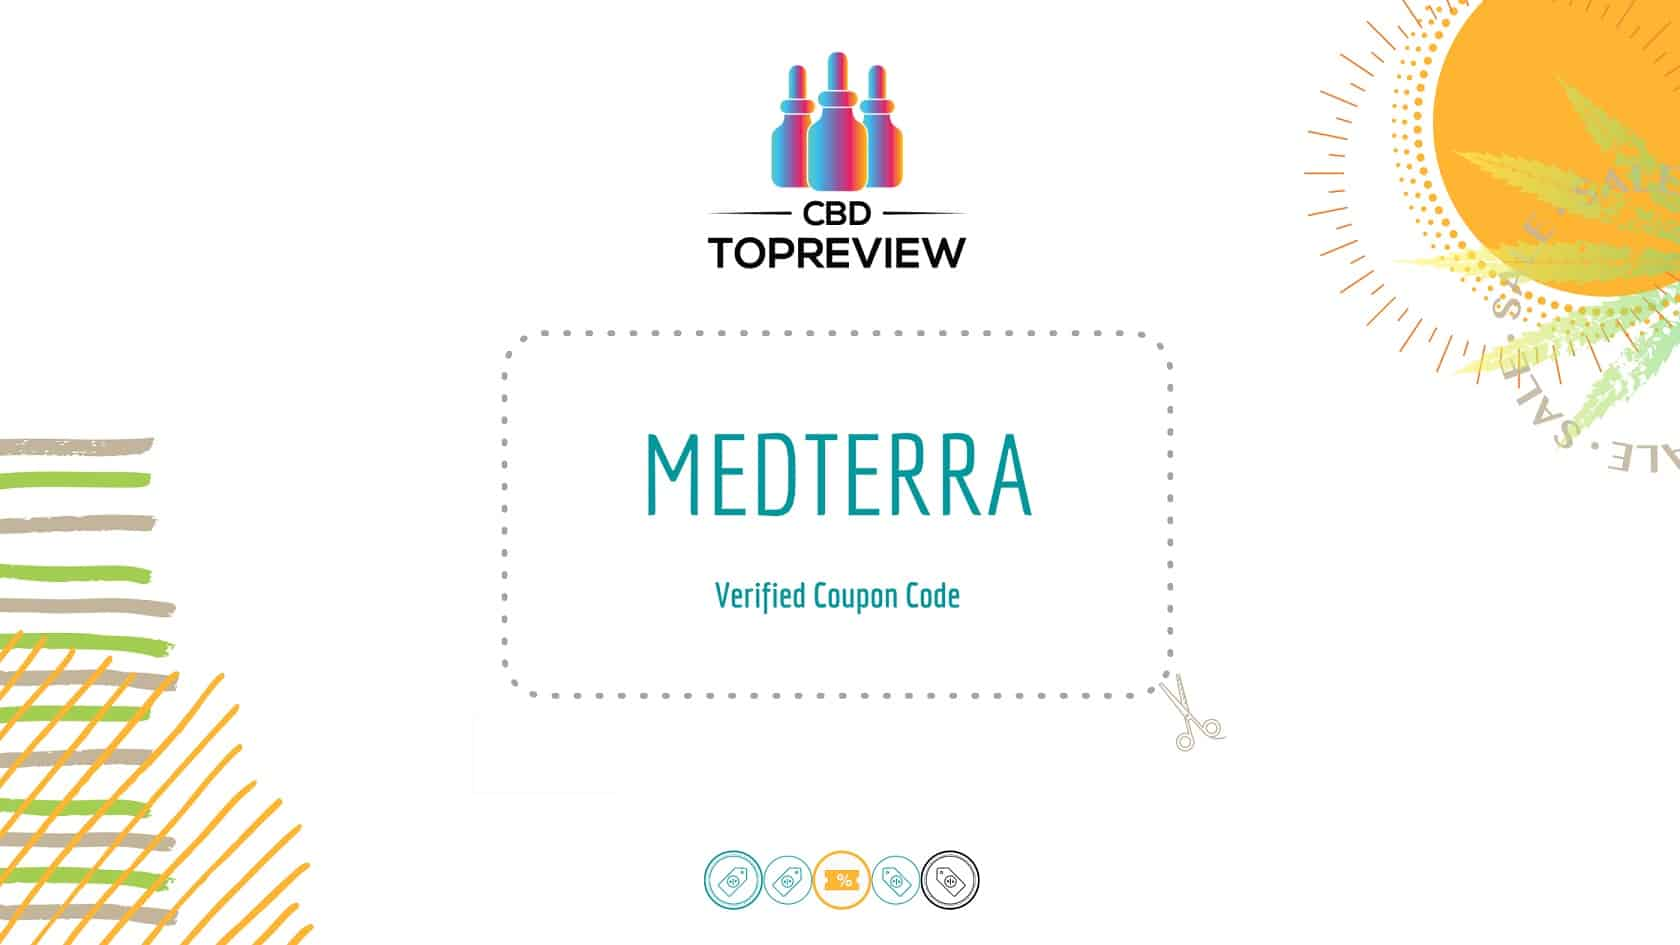 Medterra coupon: get 10% off Medterra CBD today